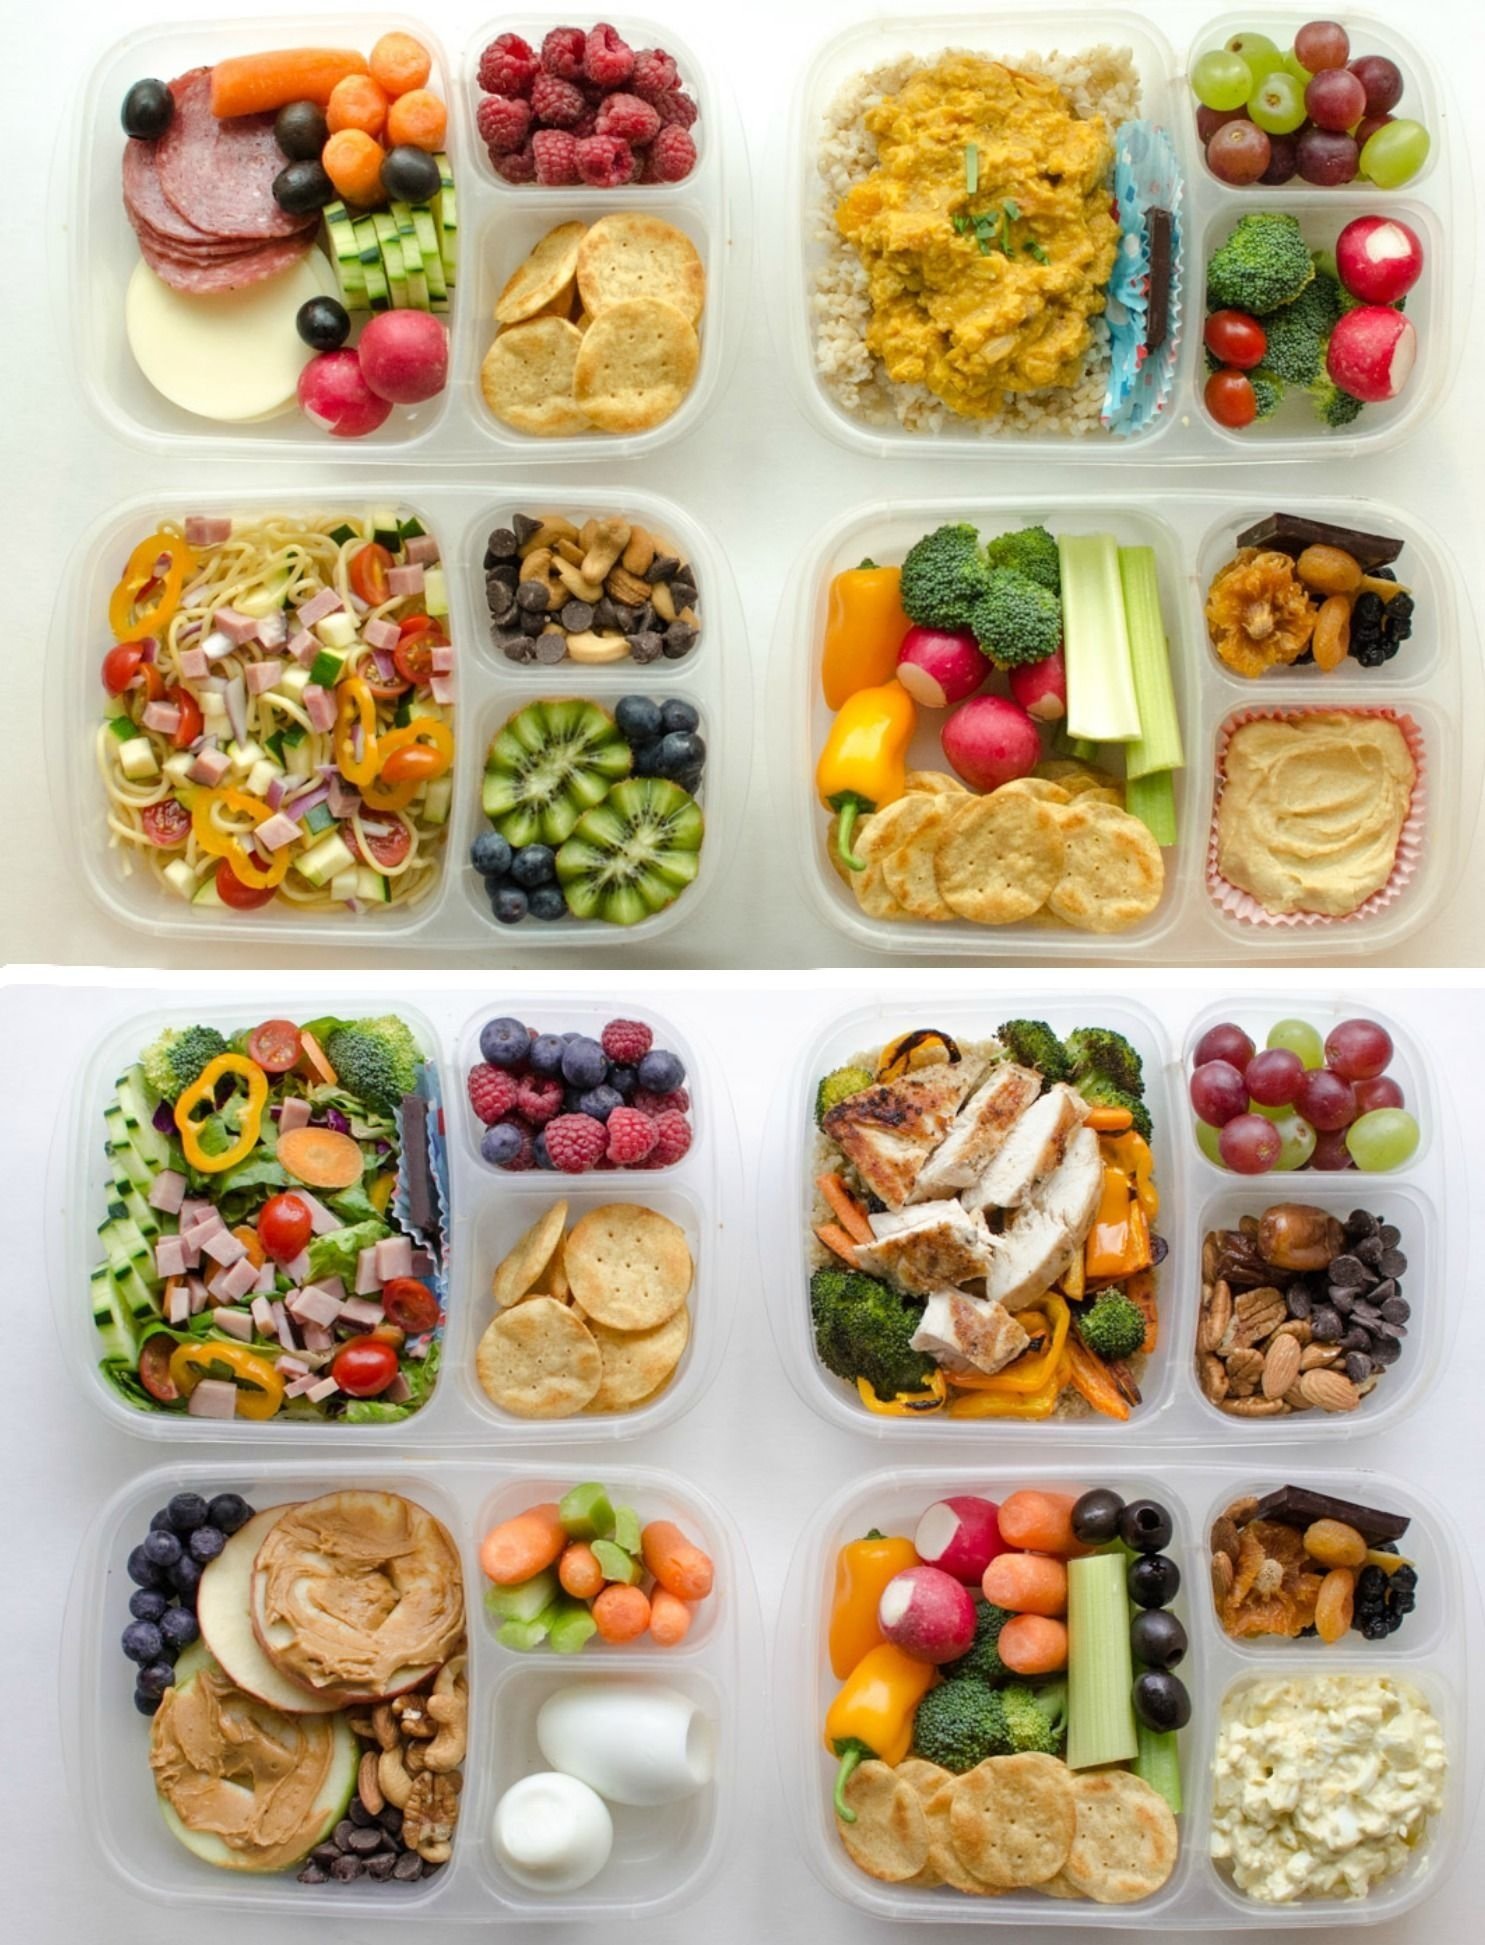 10 Cute Lunch Box Ideas For Kids 8 adult lunch box ideas repas idee lunch et recette healthy 1 2020